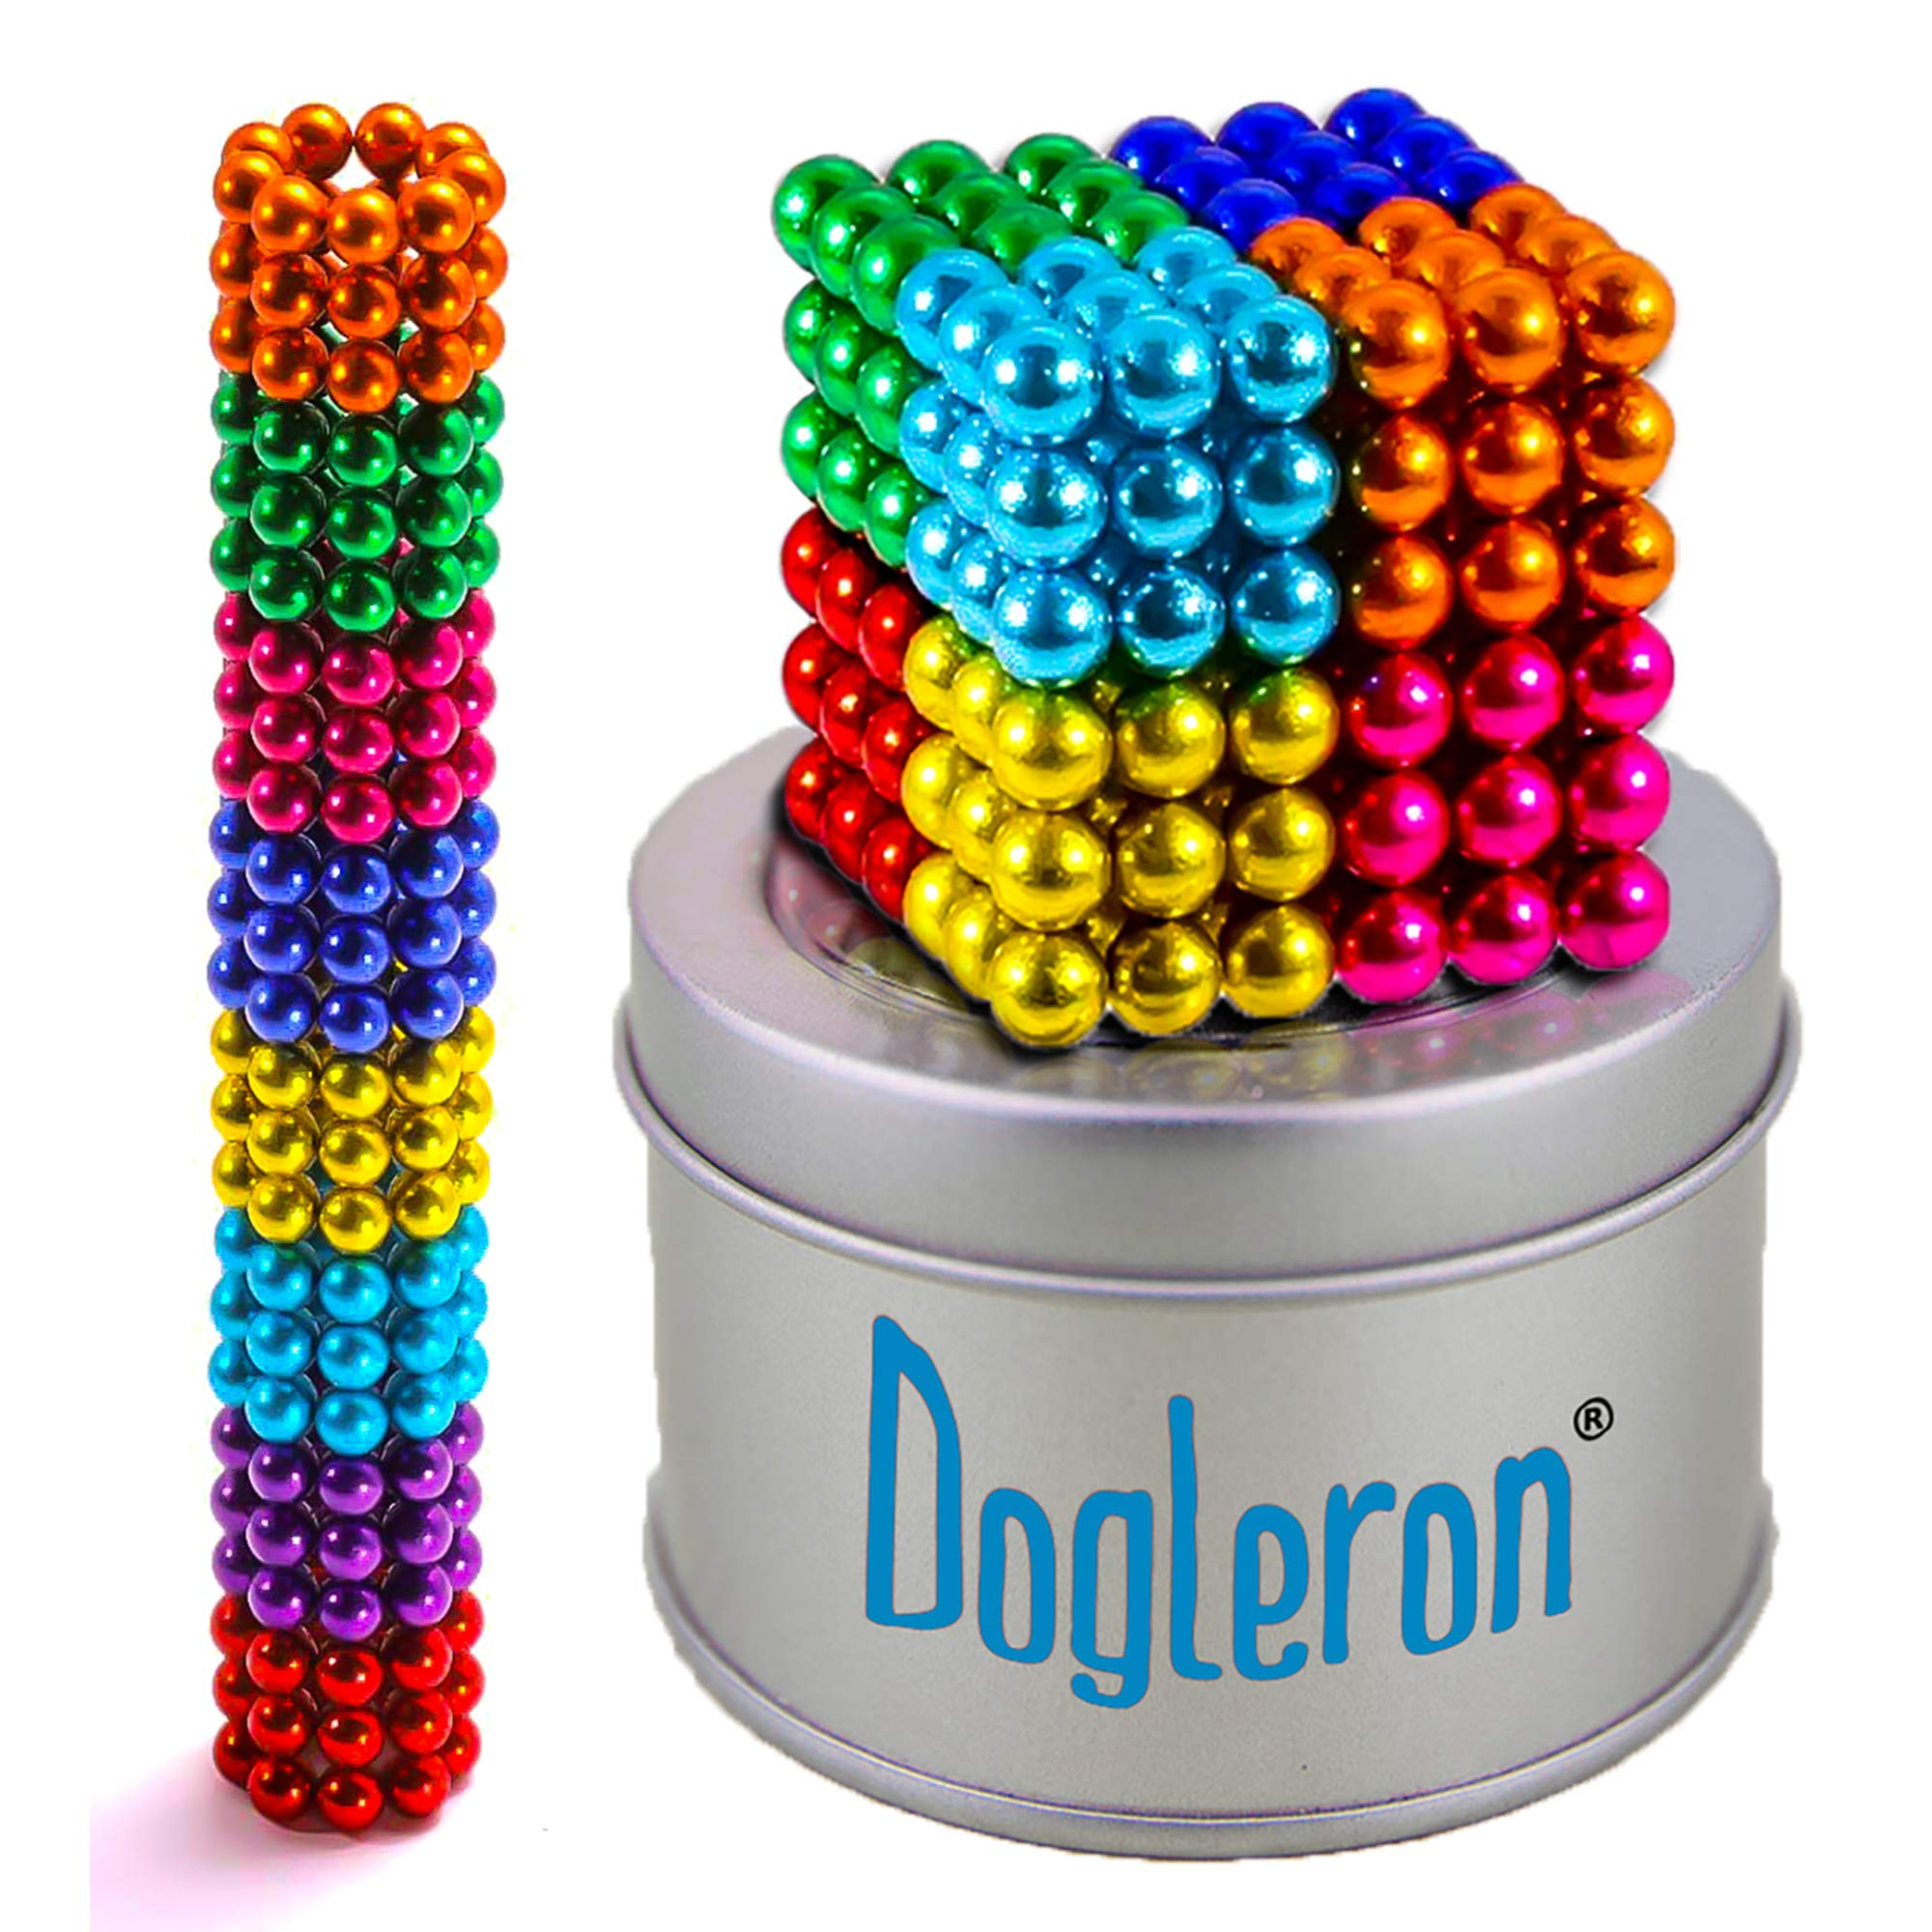 DOGLERON Magnetic Balls 8 Color 5mm 216pcs Magnets Desk Colorful Sculpture Toys Magnetic Fidget Building Blocks for Development of Intelligence Learning and Stress Relief Gift for Adults or Kids by DOGLERON